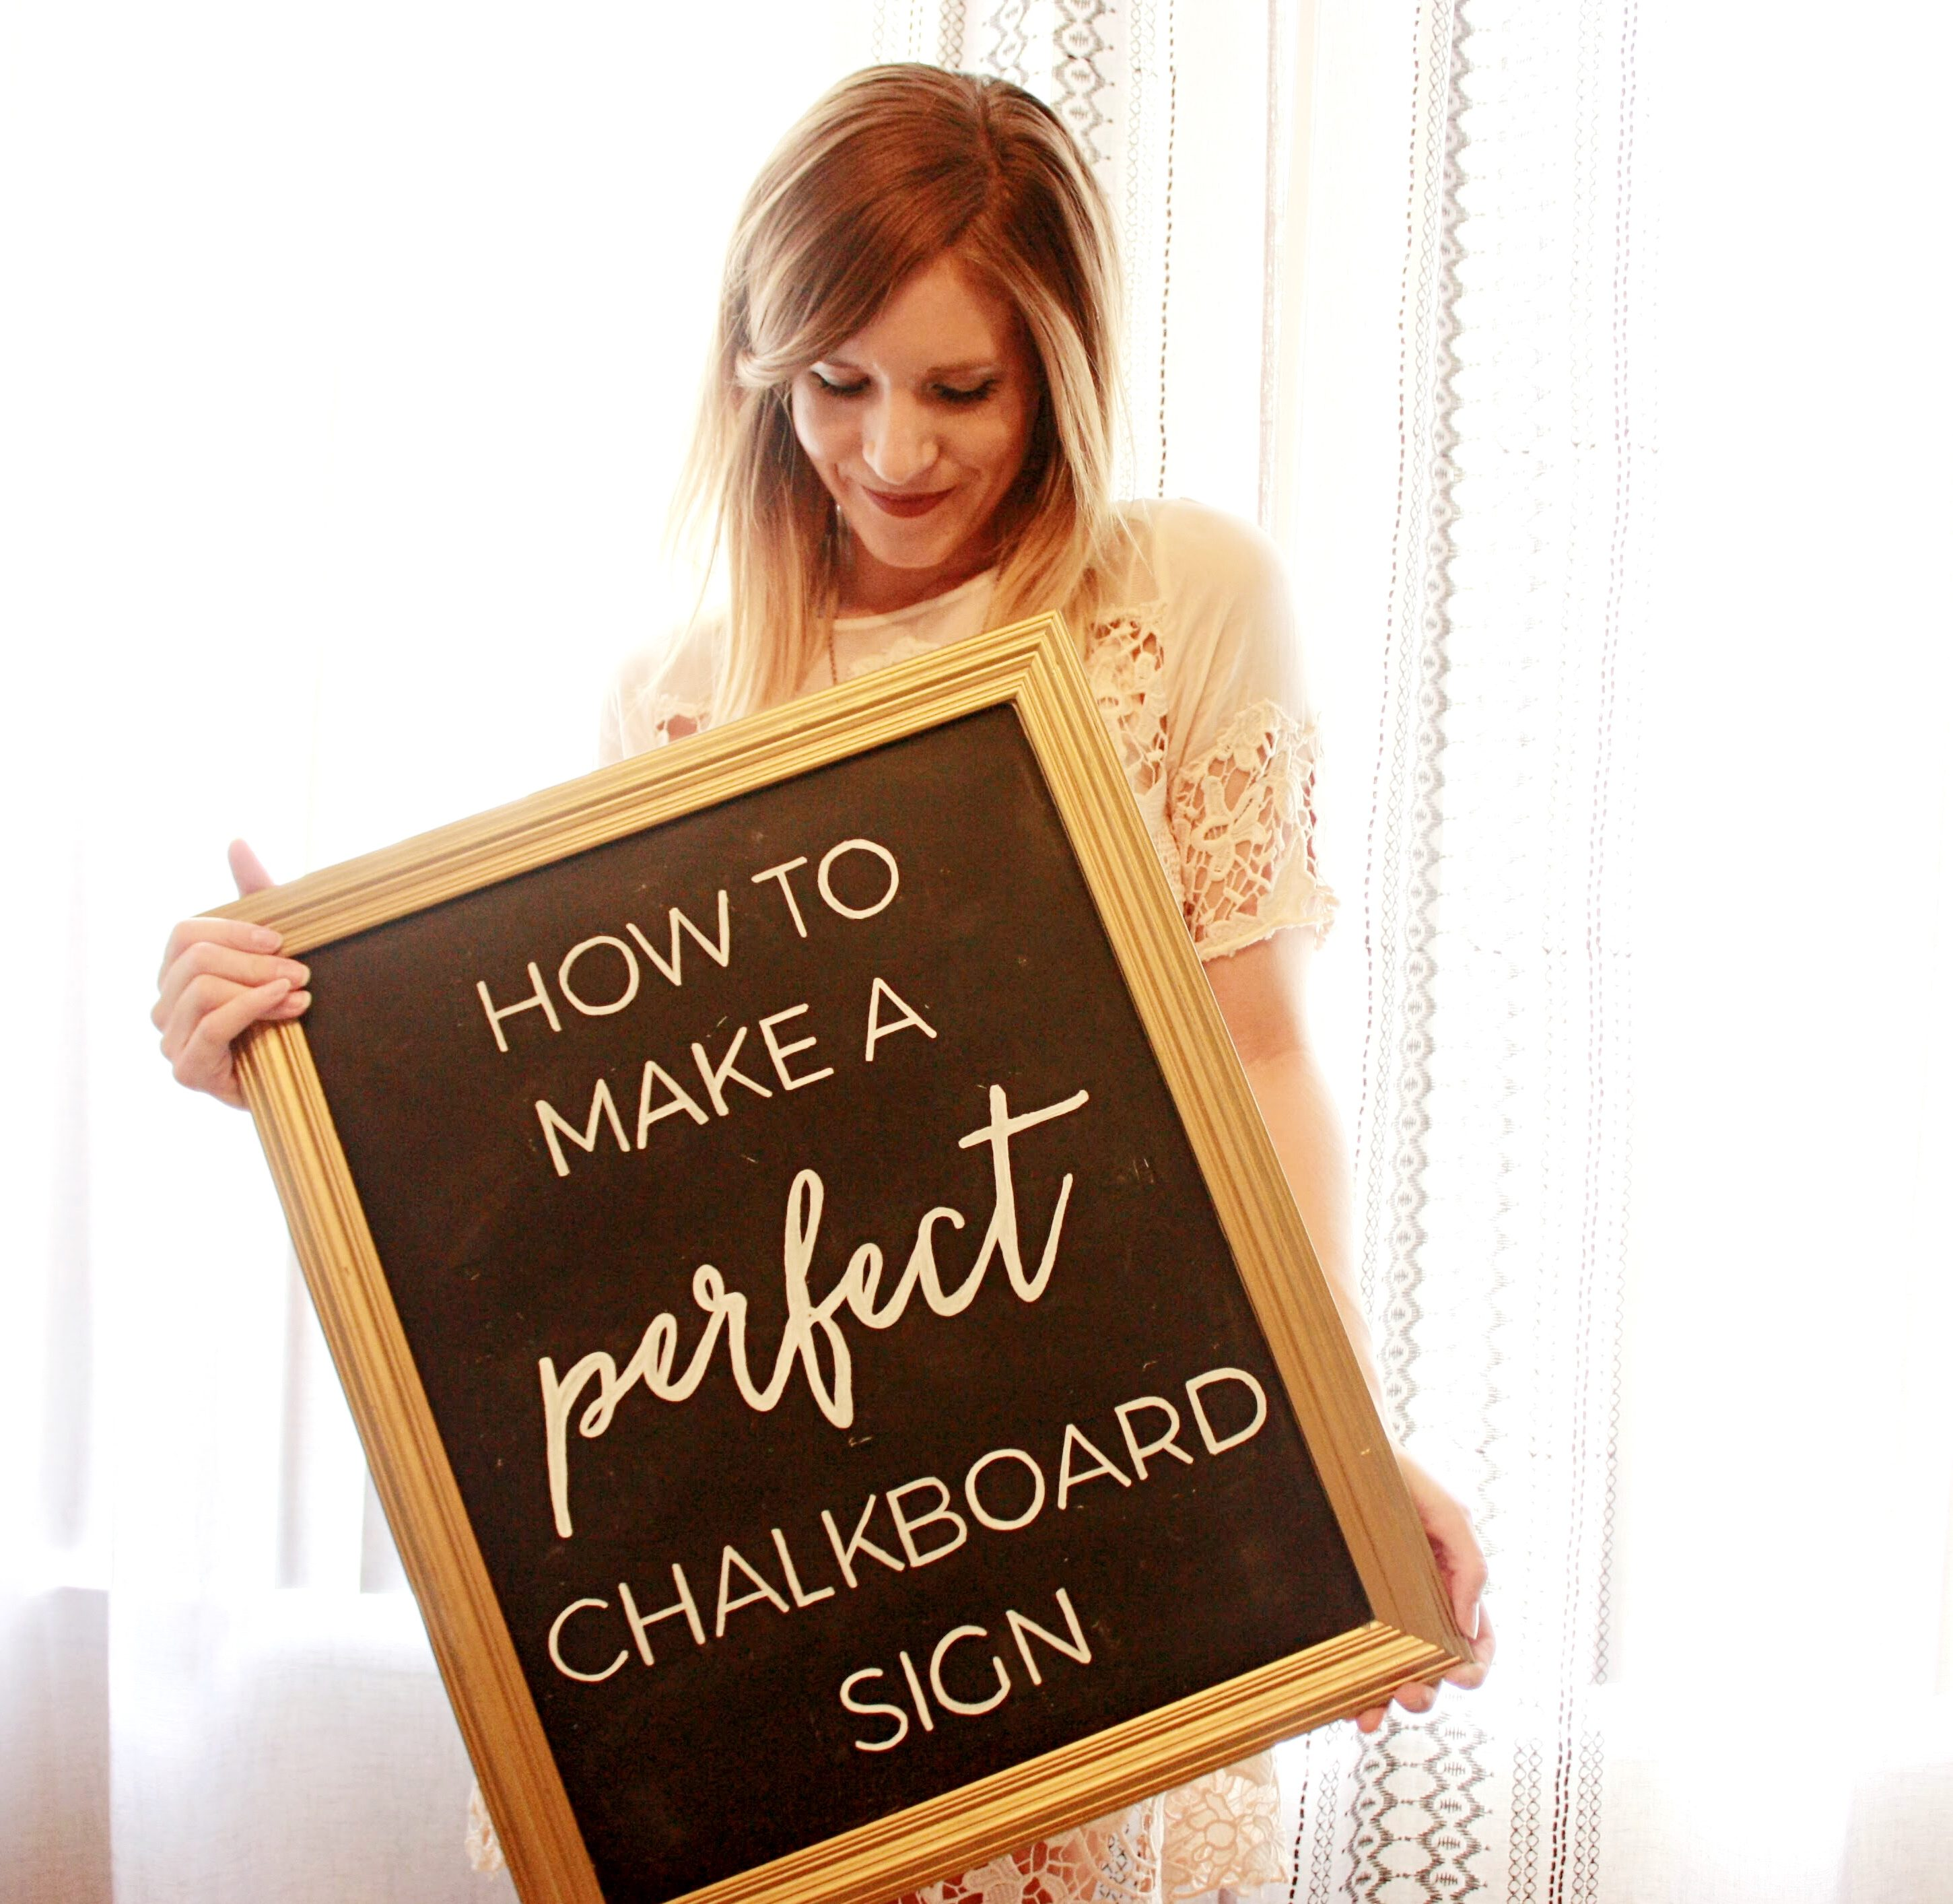 How to Make a Perfect Chalkboard Sign | That Newlywed Life